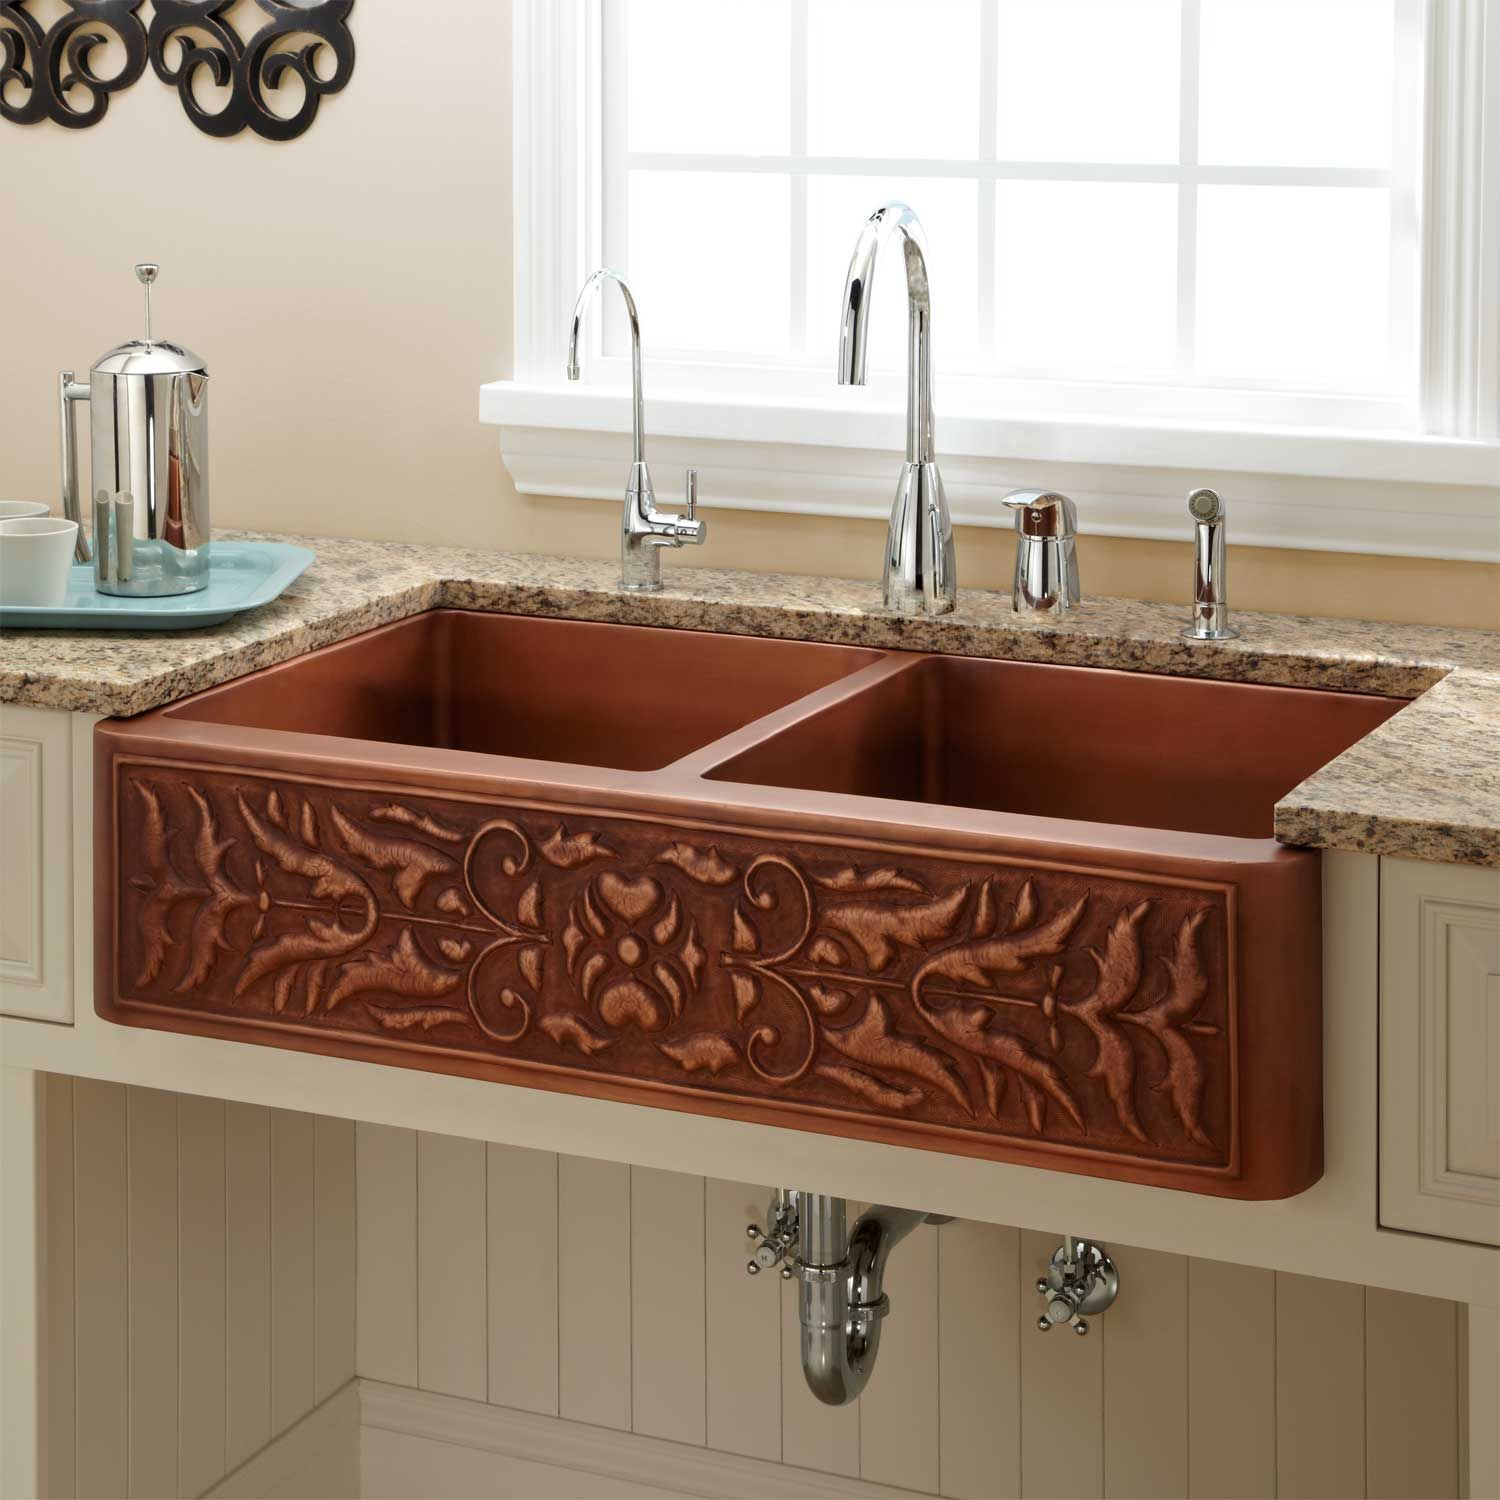 42 fiona 60 40 offset double bowl hammered copper farmhouse sink signature hardware copper on kitchen sink id=68920